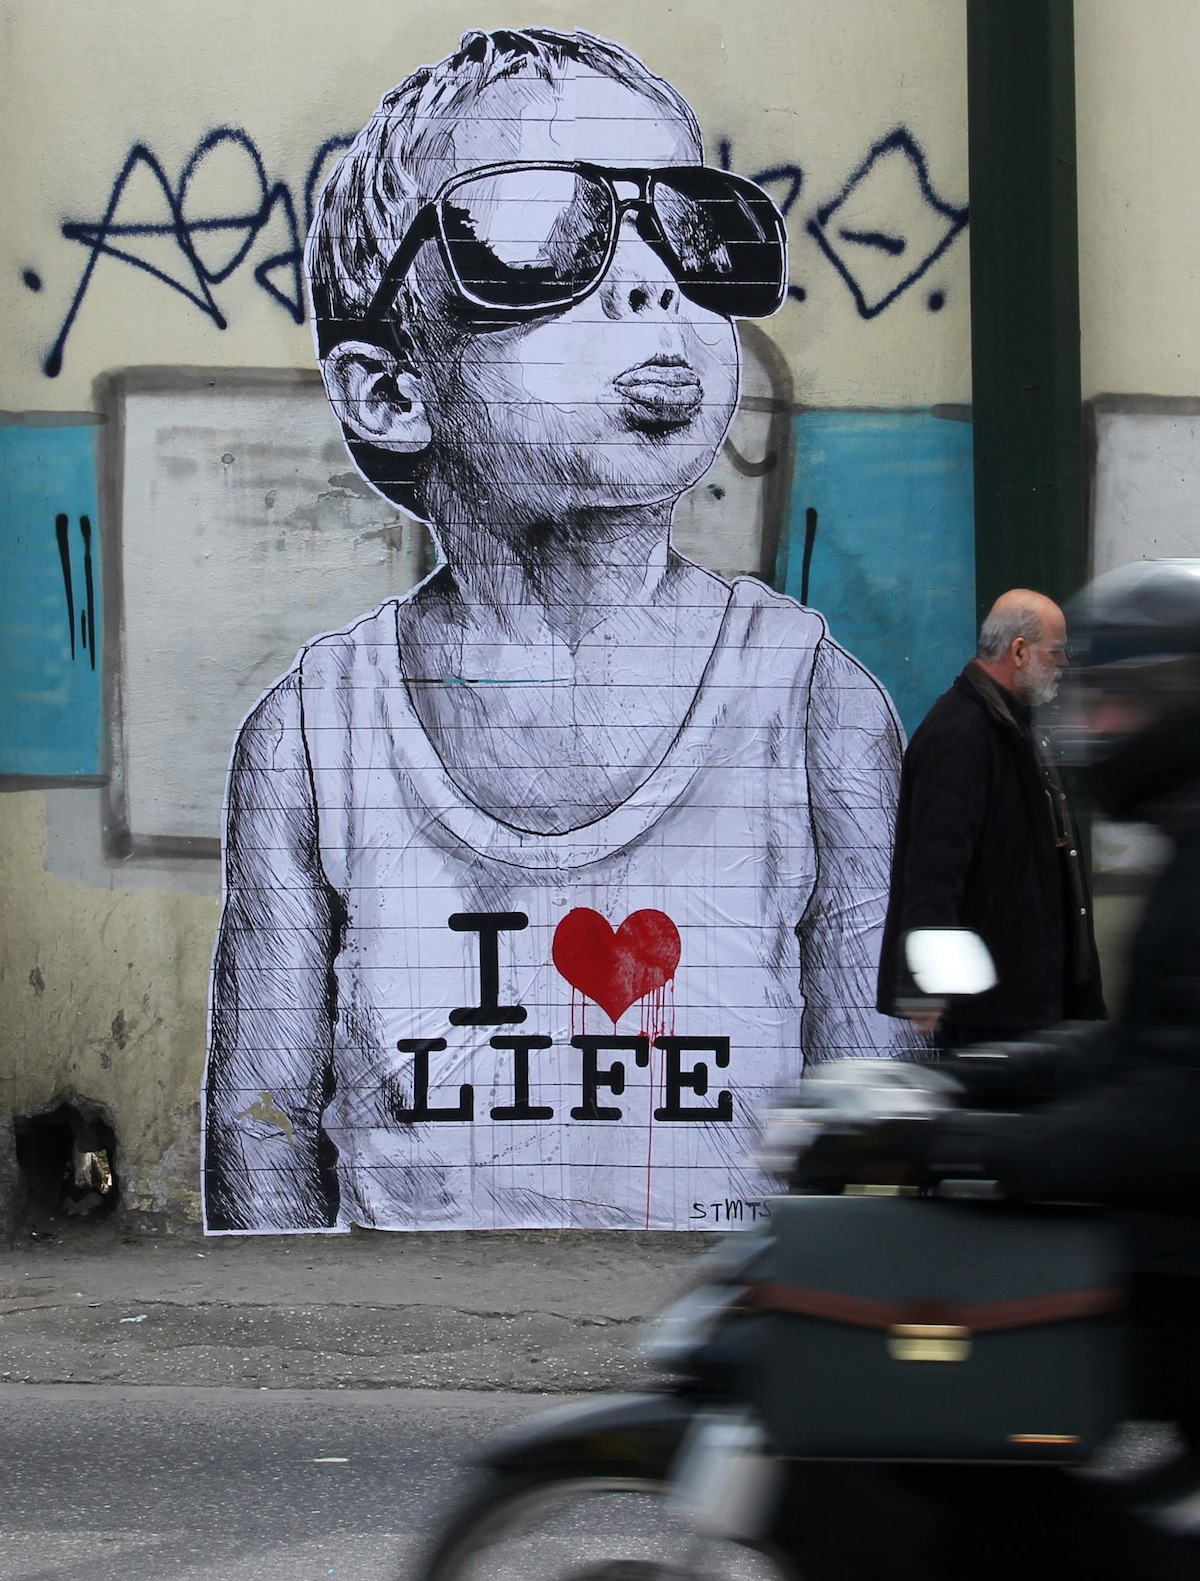 by STMTS in Athens, Greece.